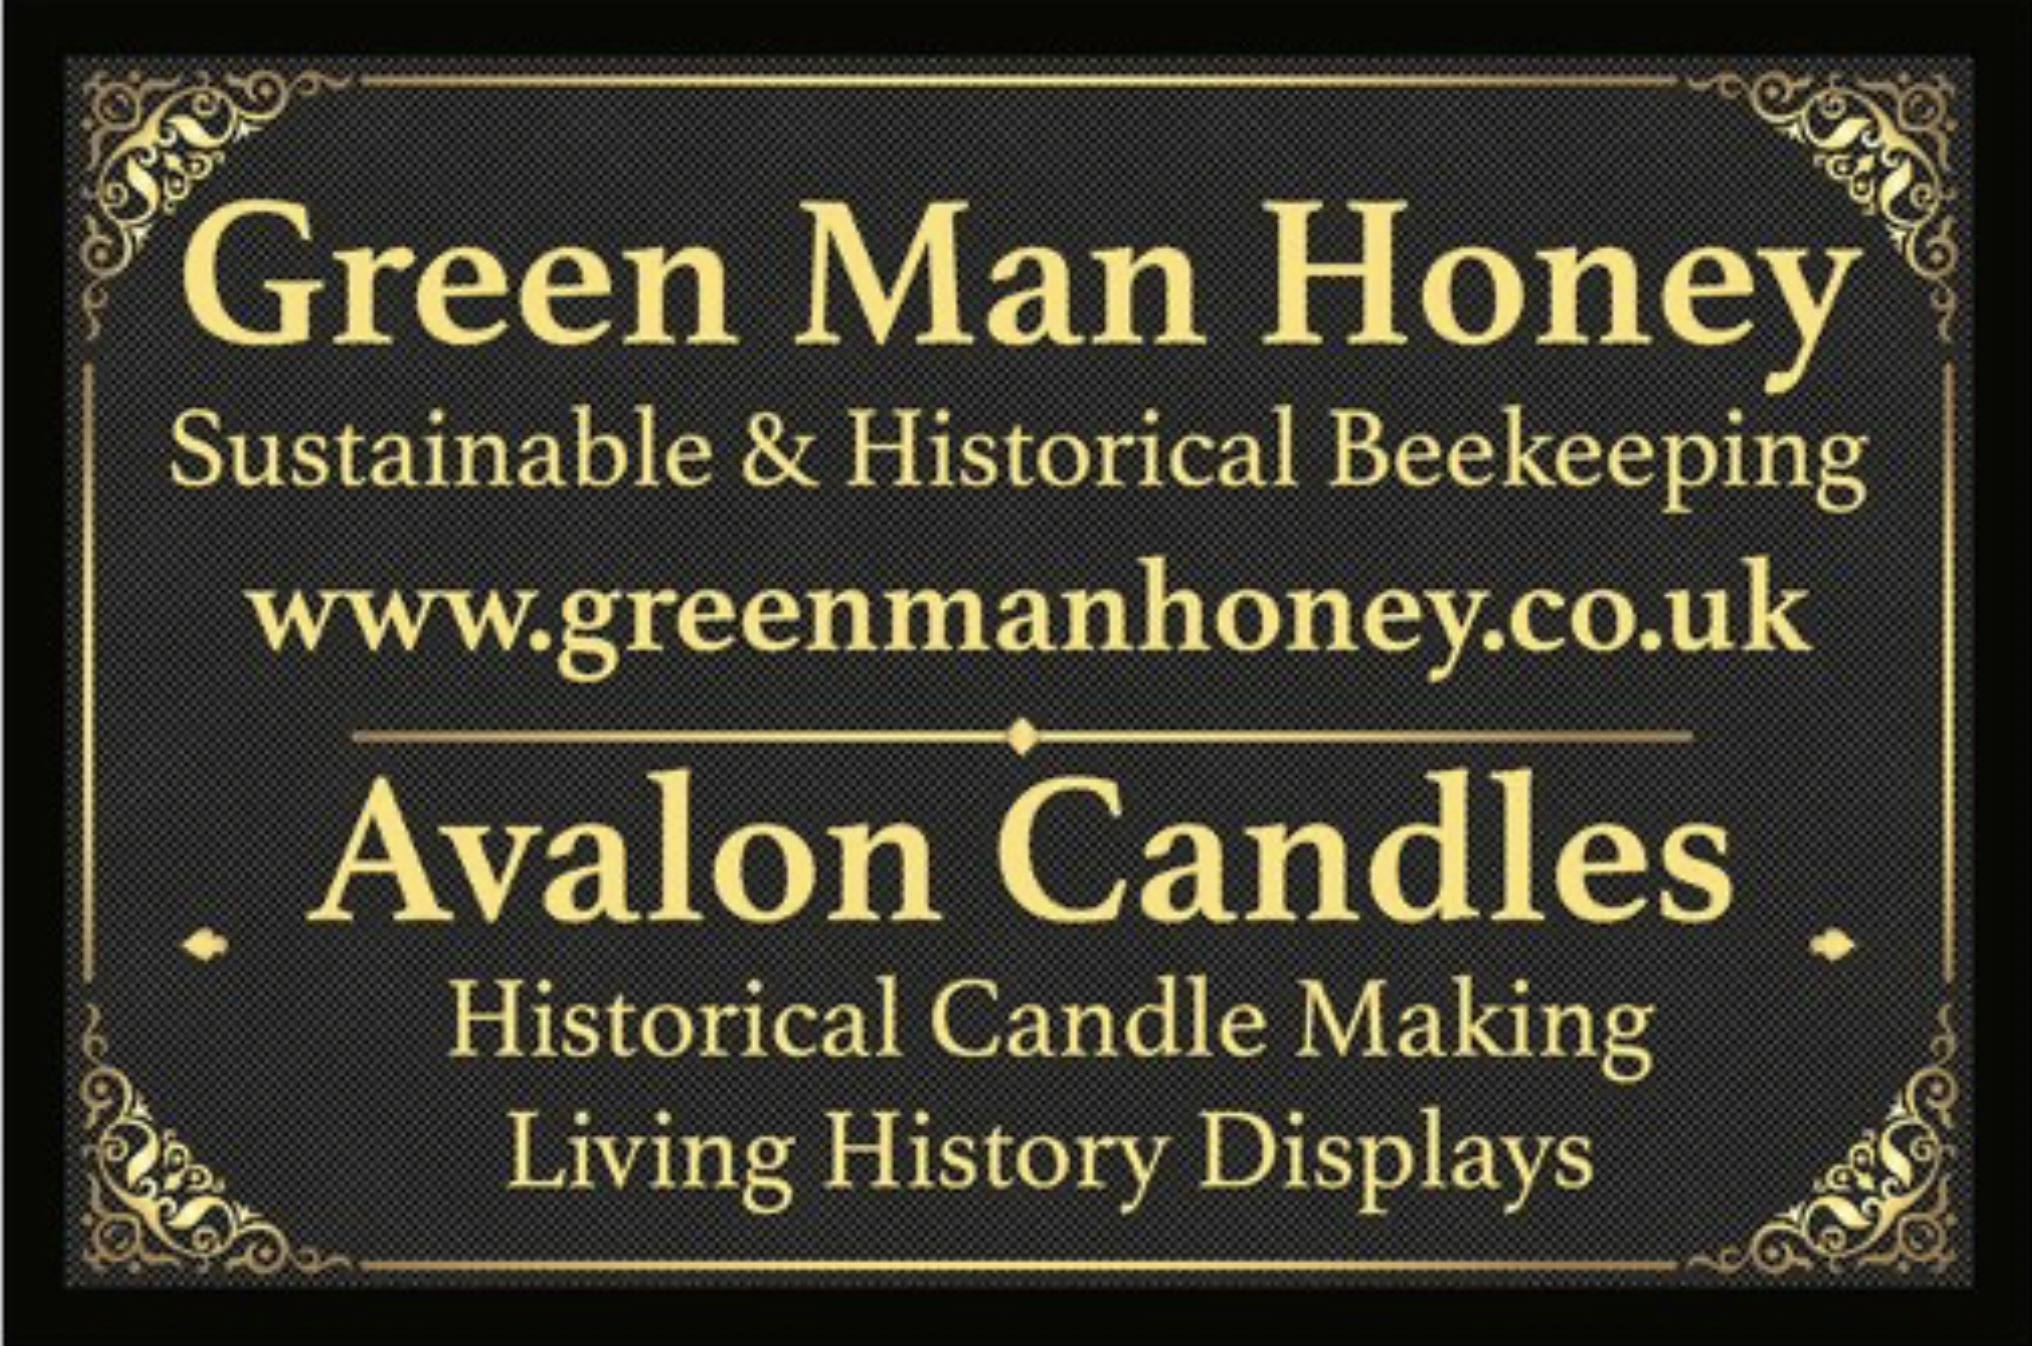 GreenManHoney - Shop